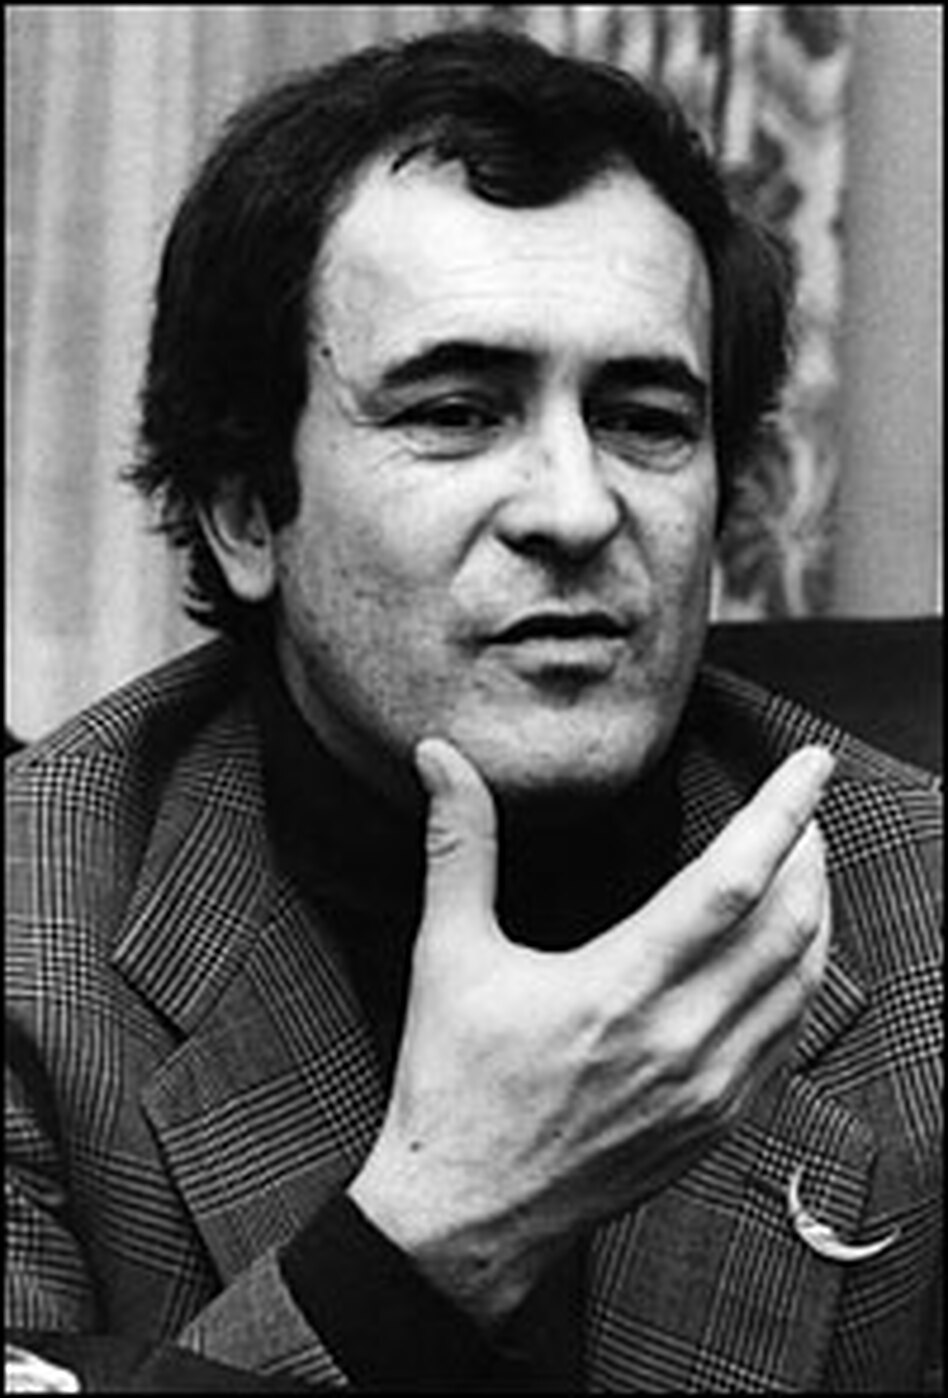 New Yorker Films distributed the films of director Bernardo Bertolucci while he was still relatively unknown.